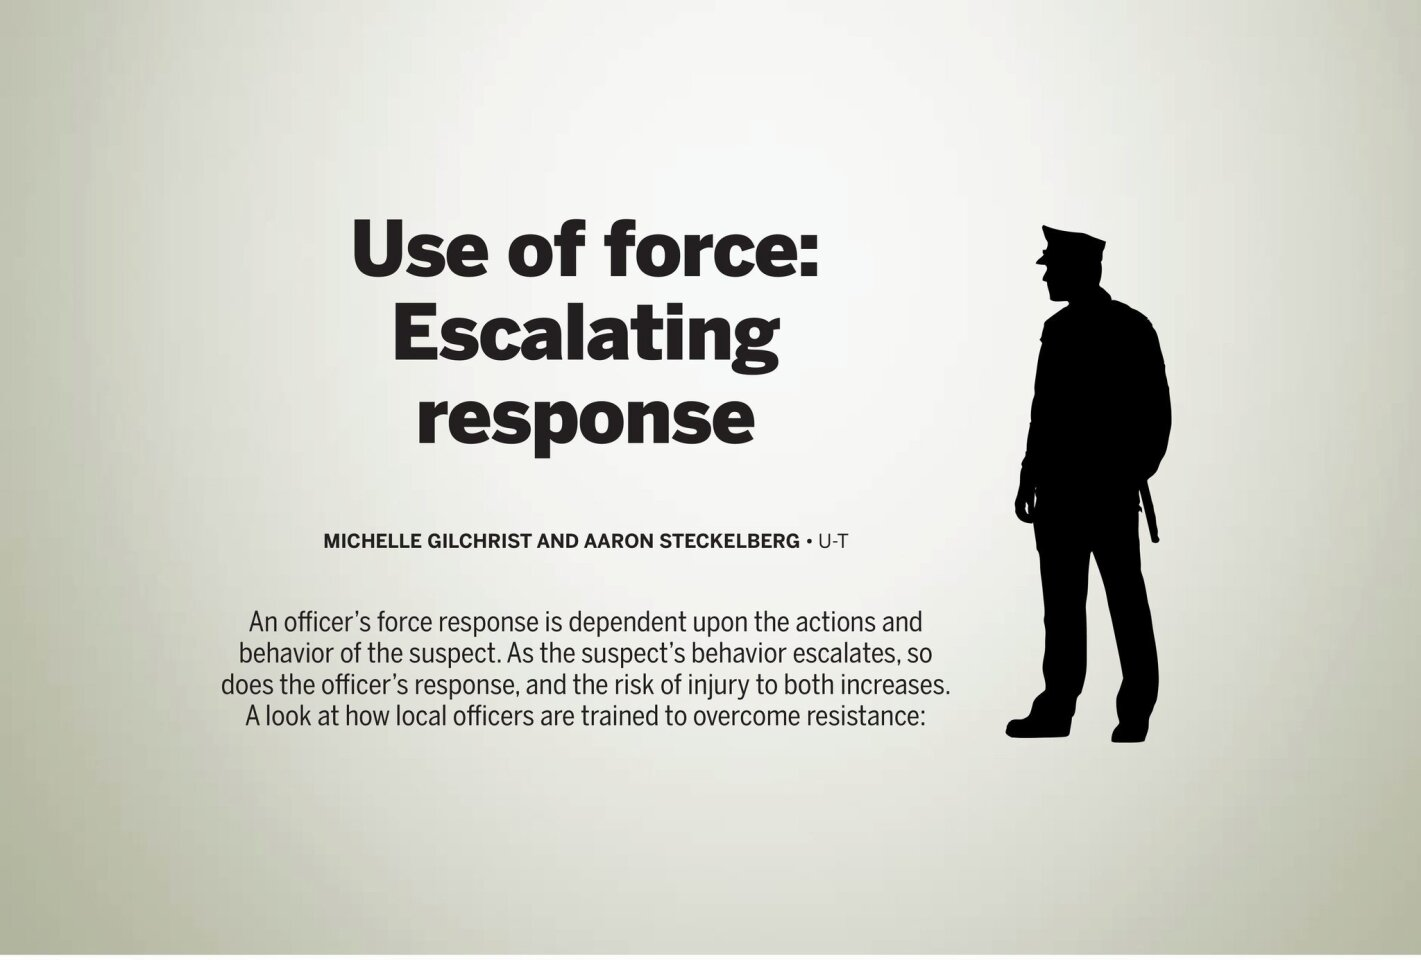 Determining use of force